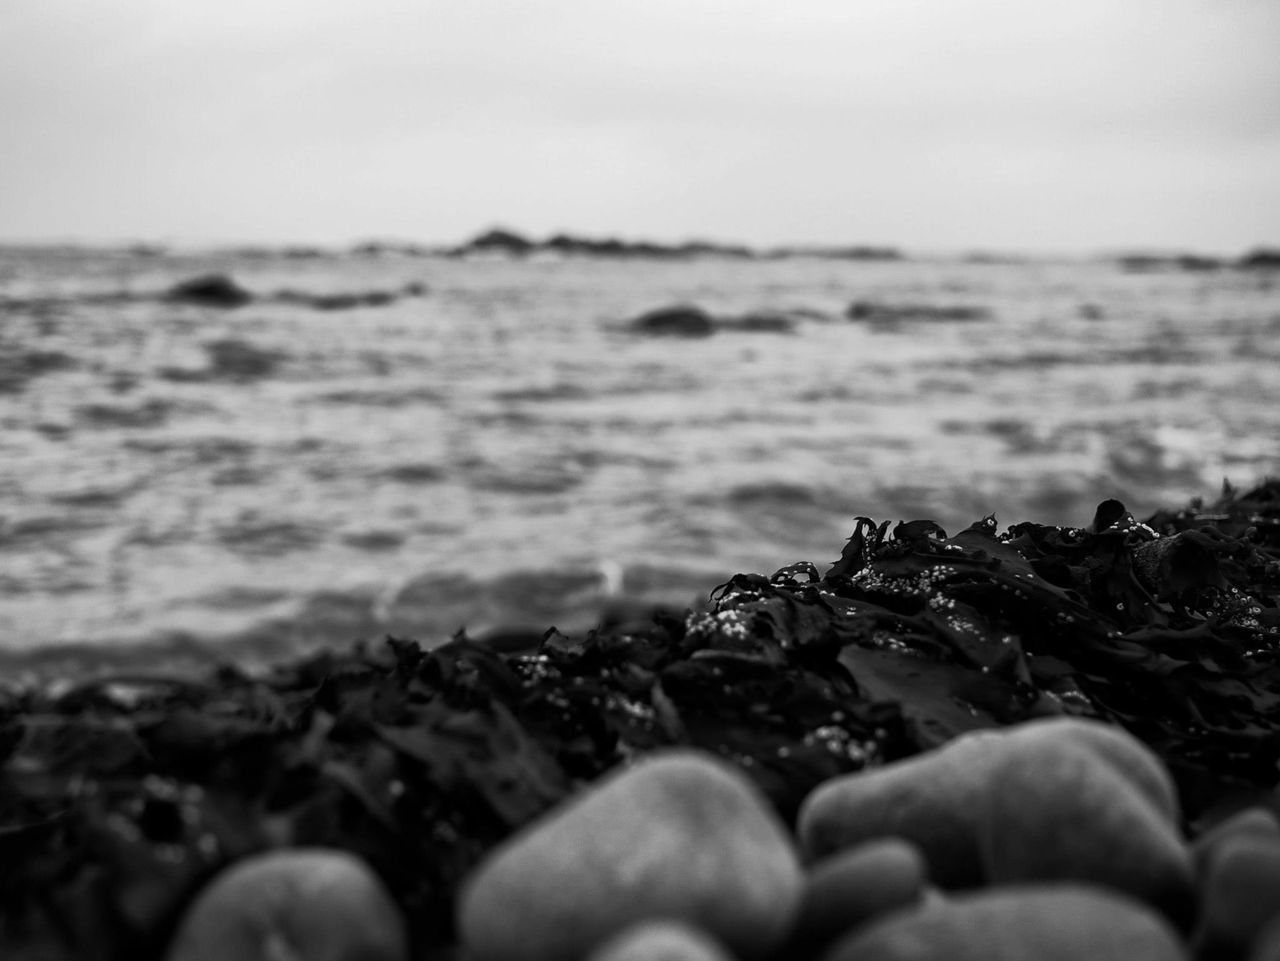 sea, beach, shore, water, nature, outdoors, sky, human body part, close-up, beauty in nature, human hand, horizon over water, day, one person, pebble beach, wave, people